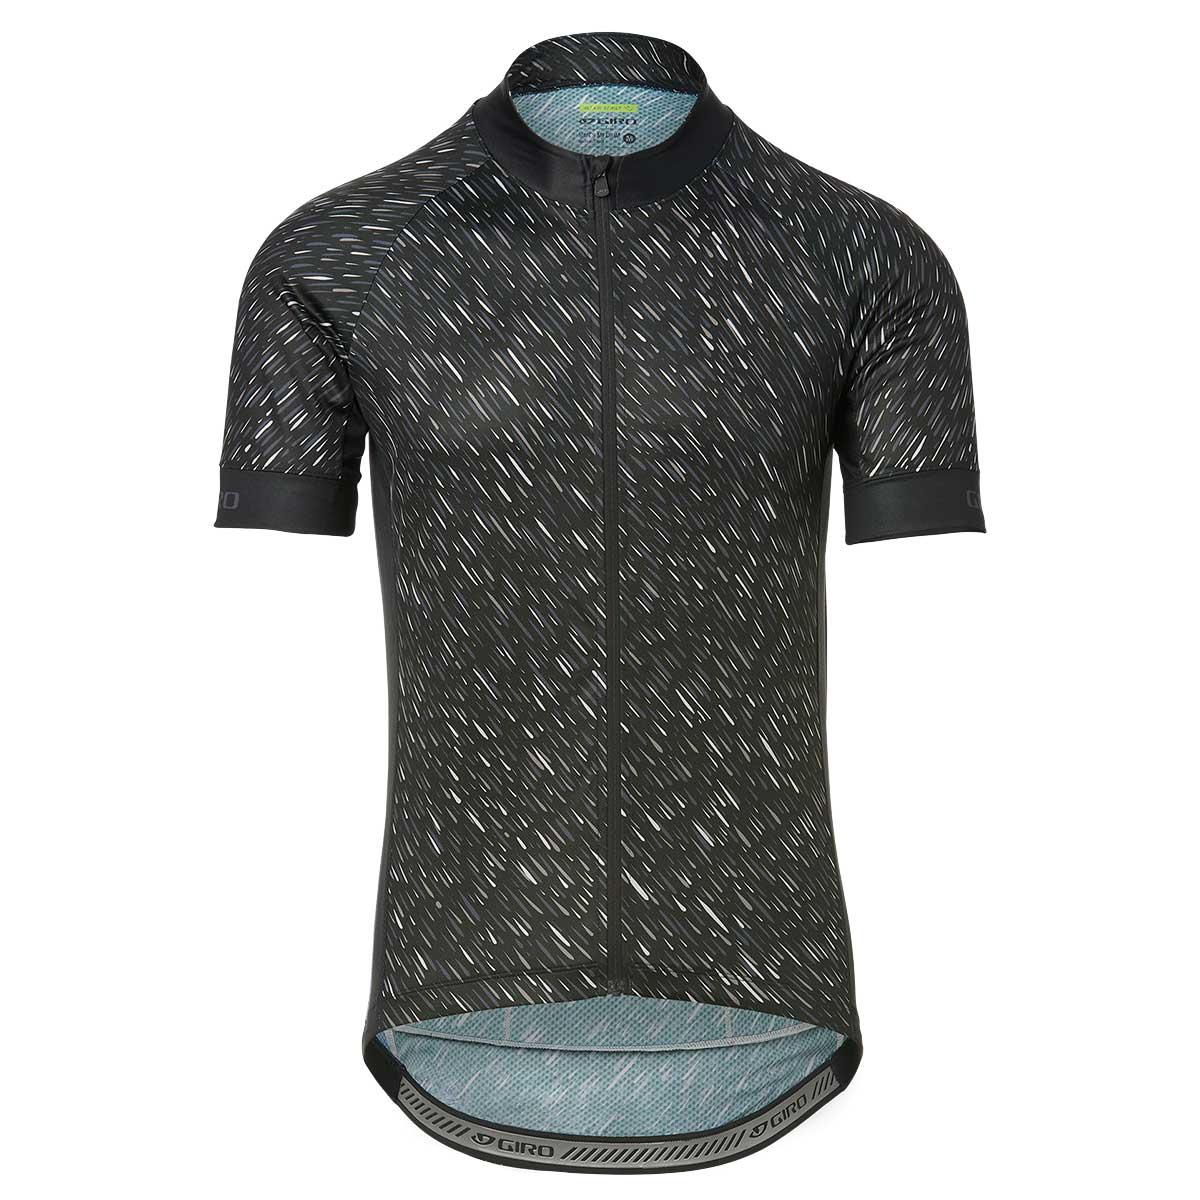 Giro men's Chrono Sport Jersey in Black Shutter front view